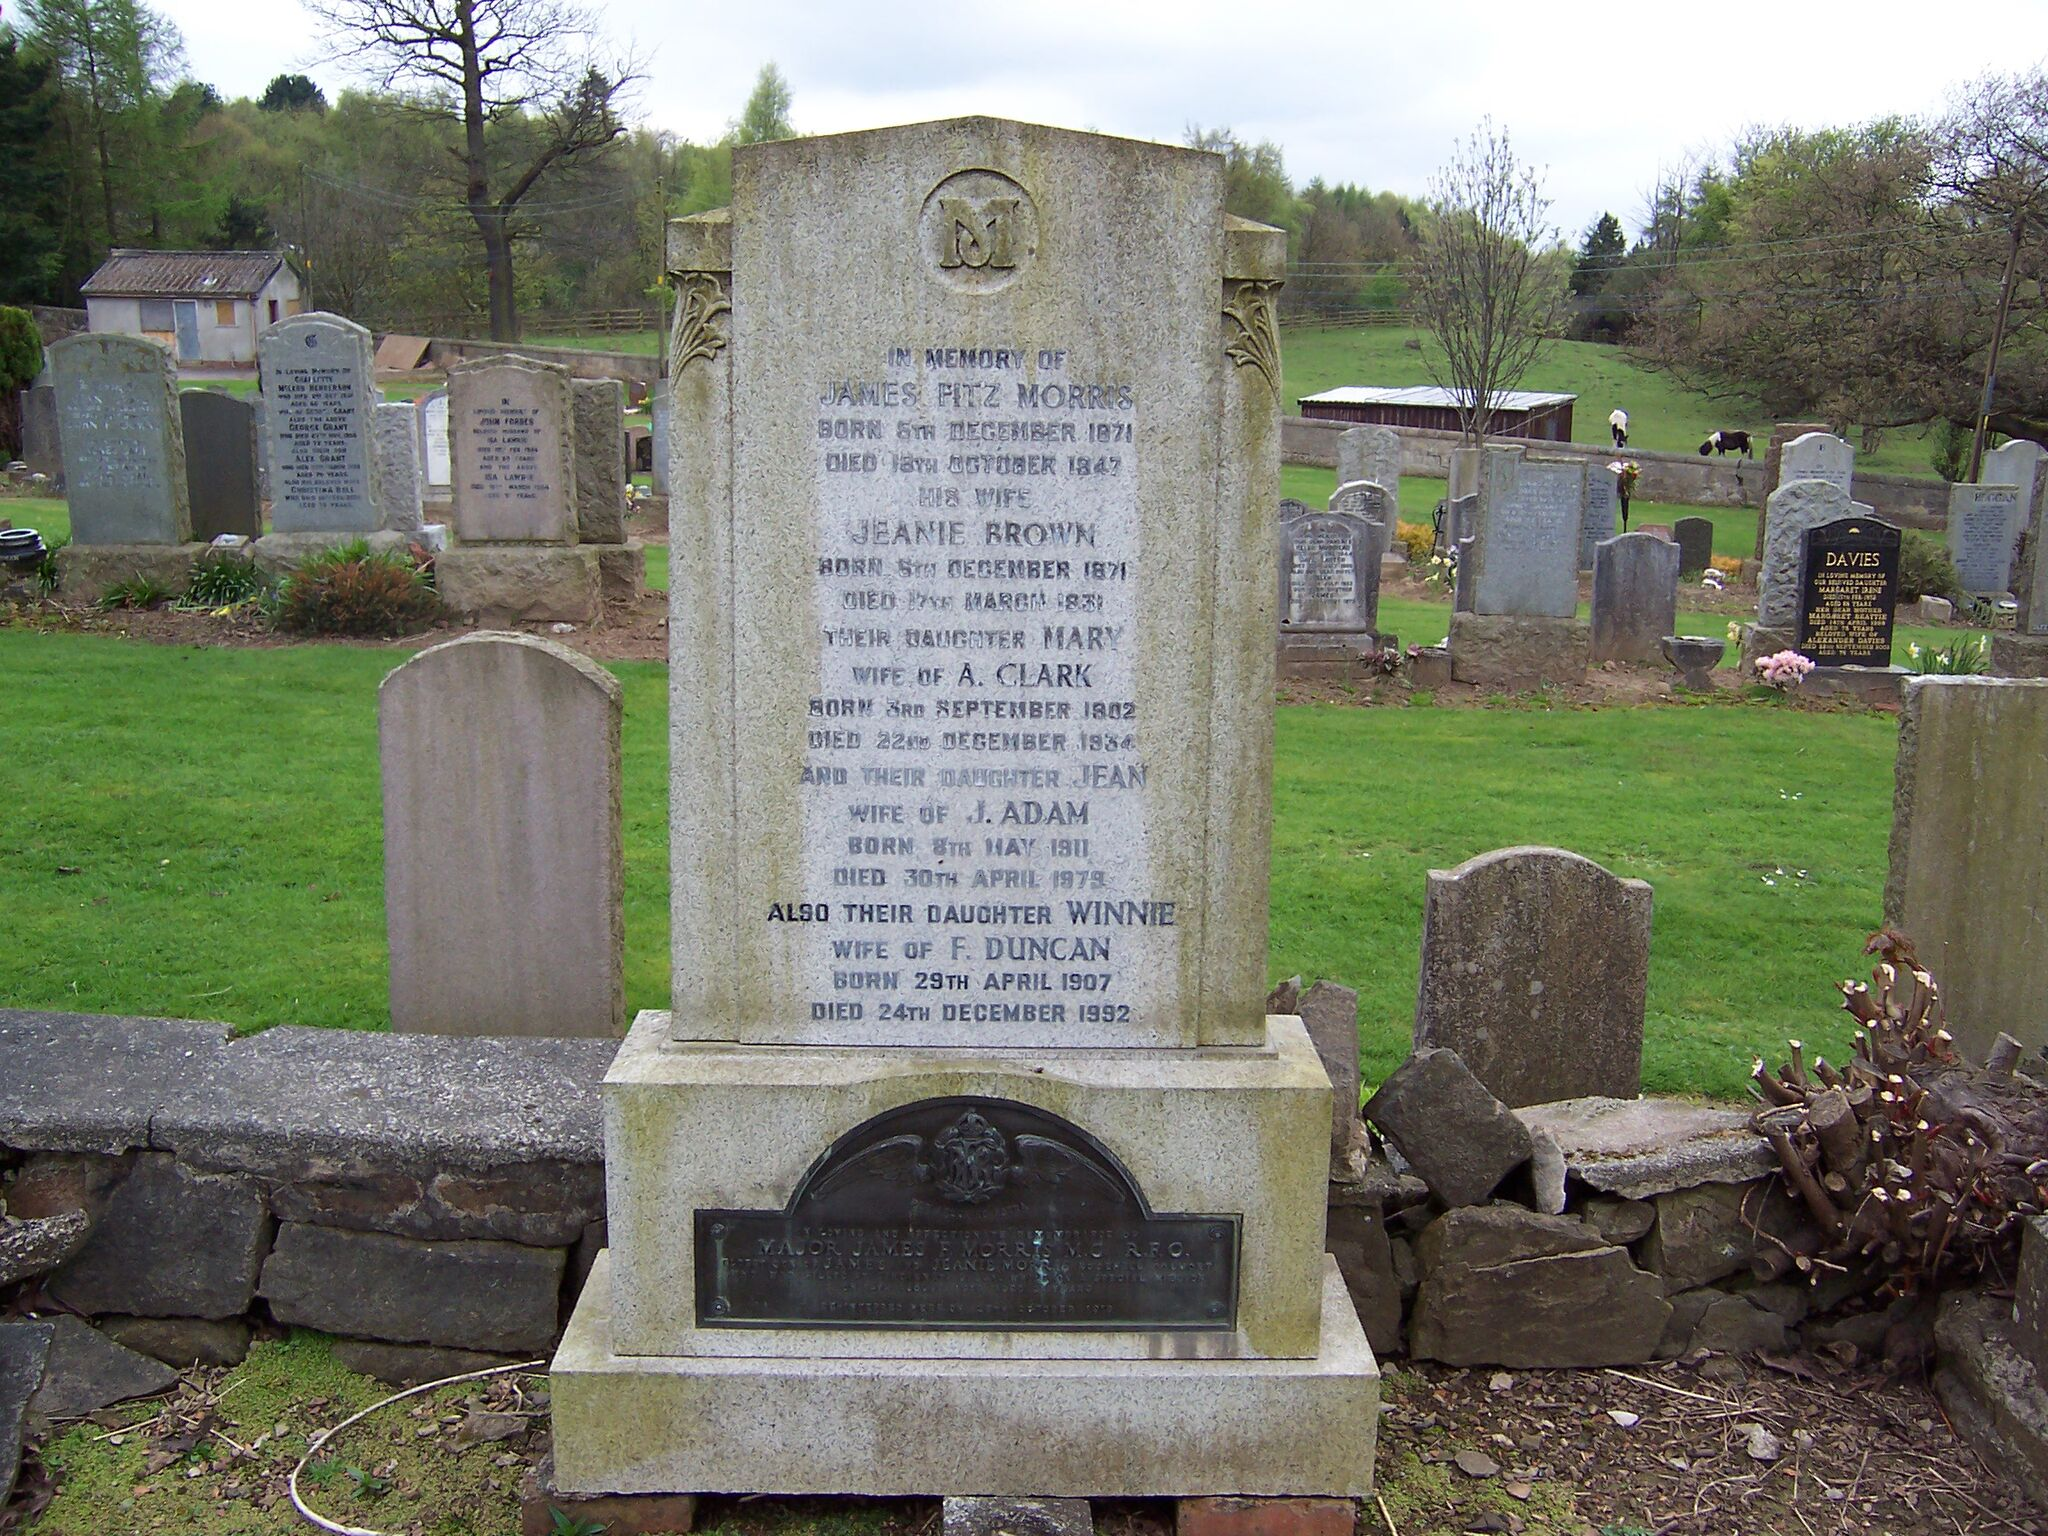 Capt. James Fitzmorris' family tombstone in Polmont, Scotland